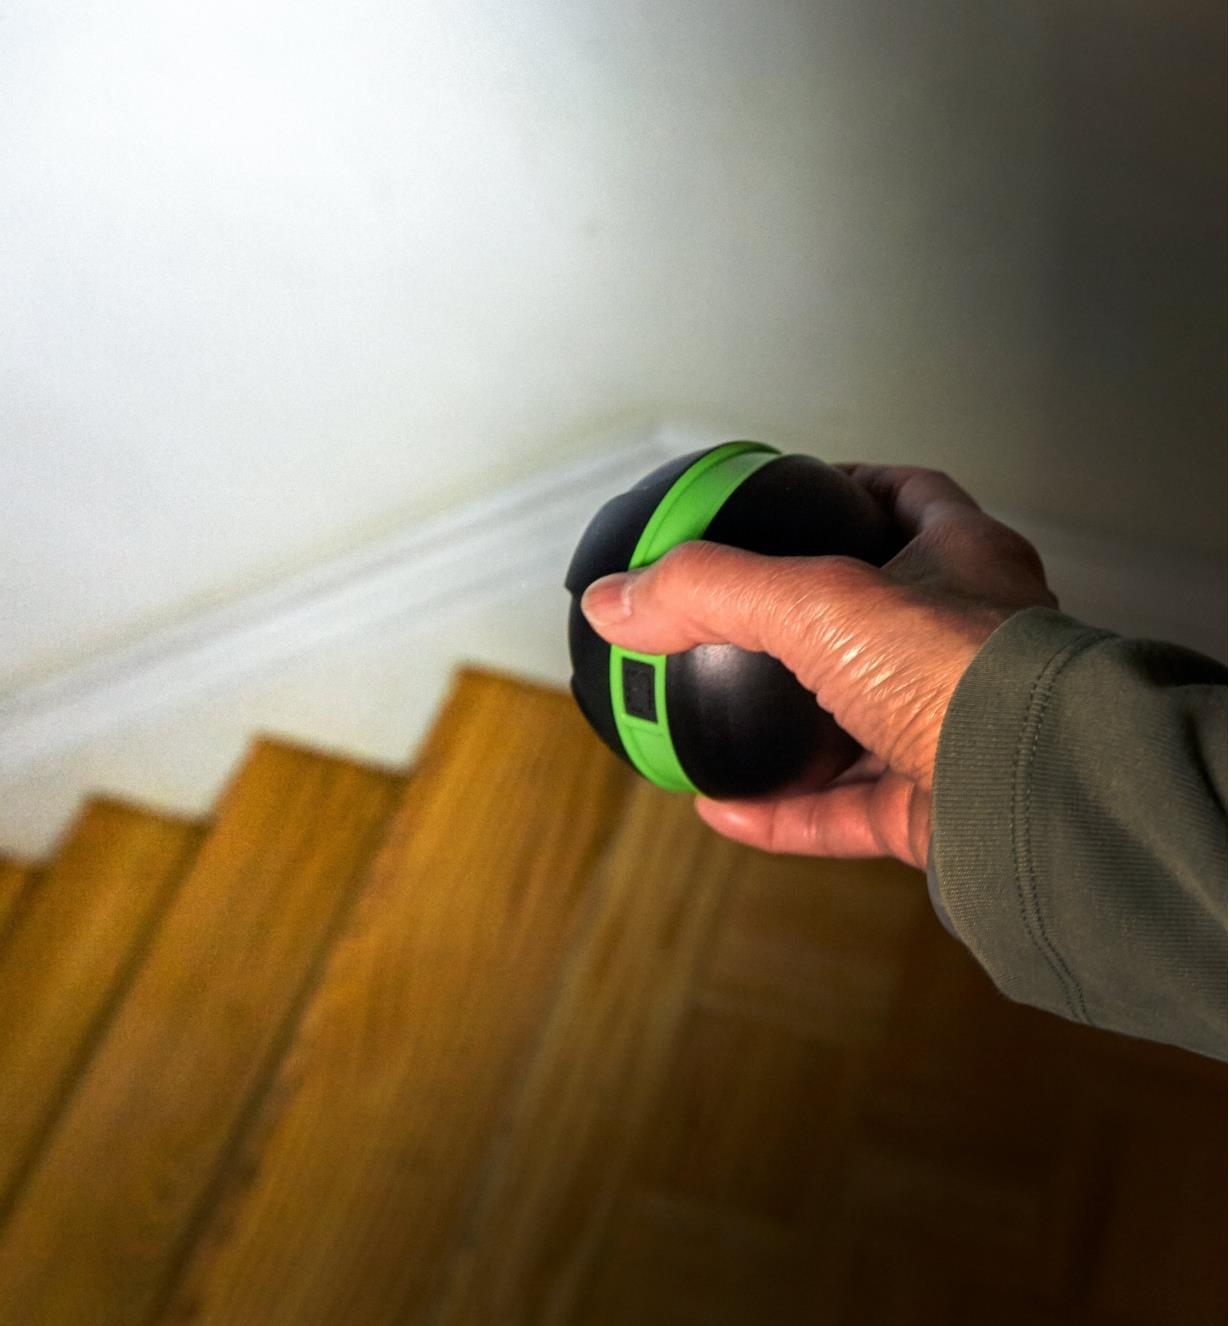 A battery-powered orb light used without the base, aimed by hand to illuminate a flight of stairs